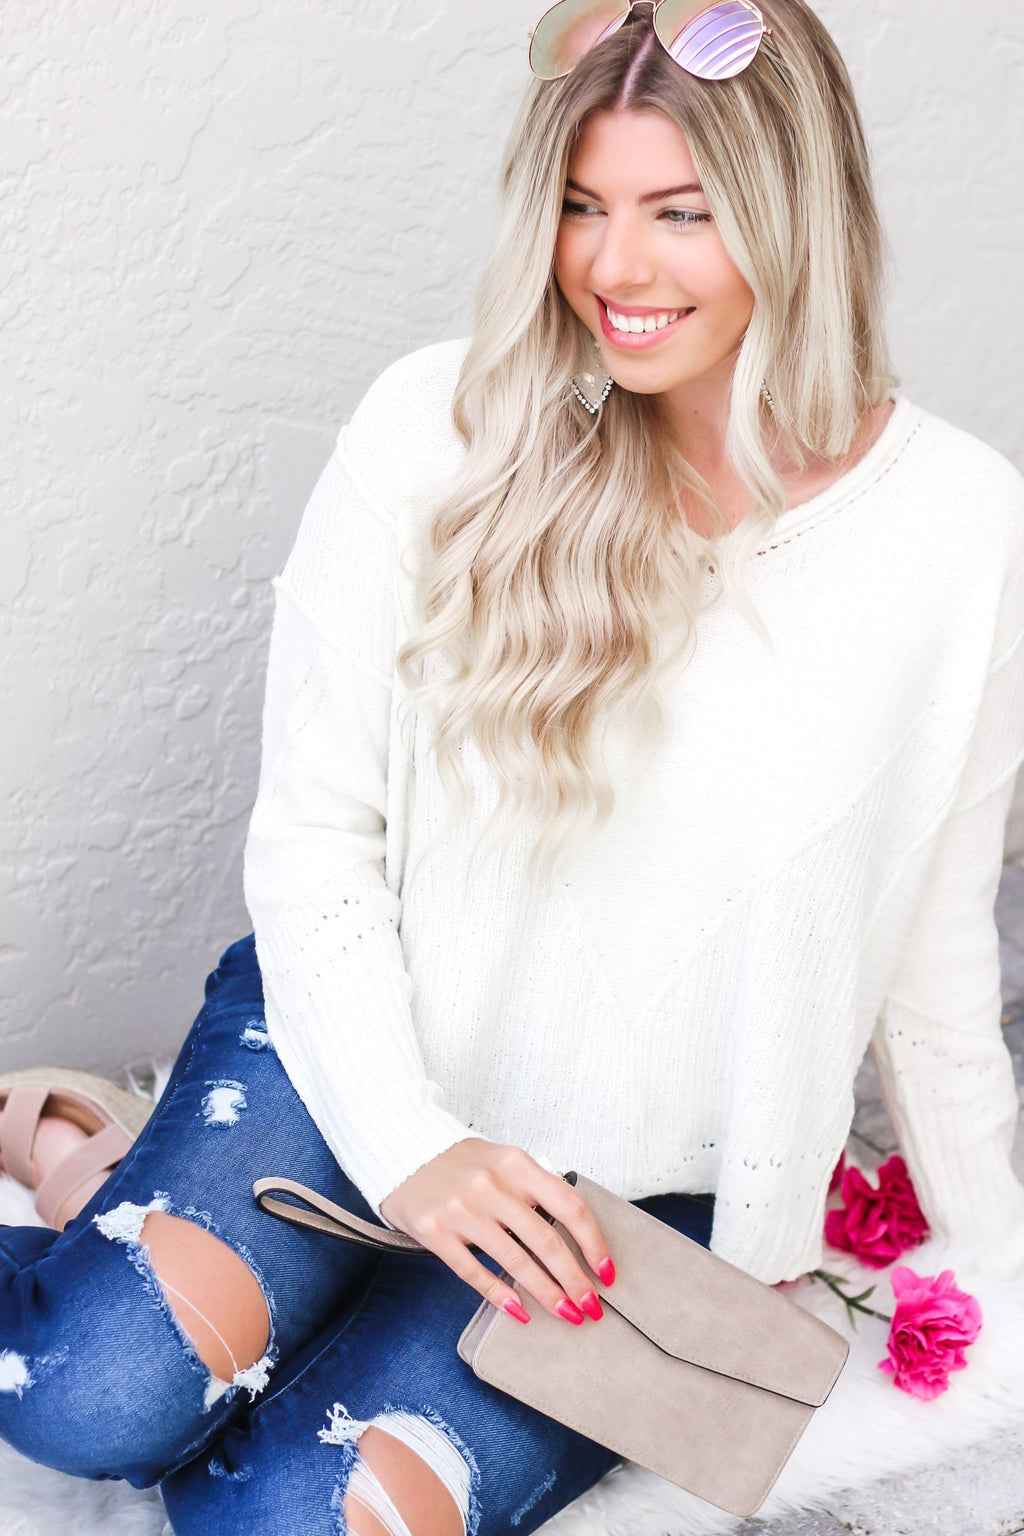 Love Someone Textured Sweater - Hollie's Boutique